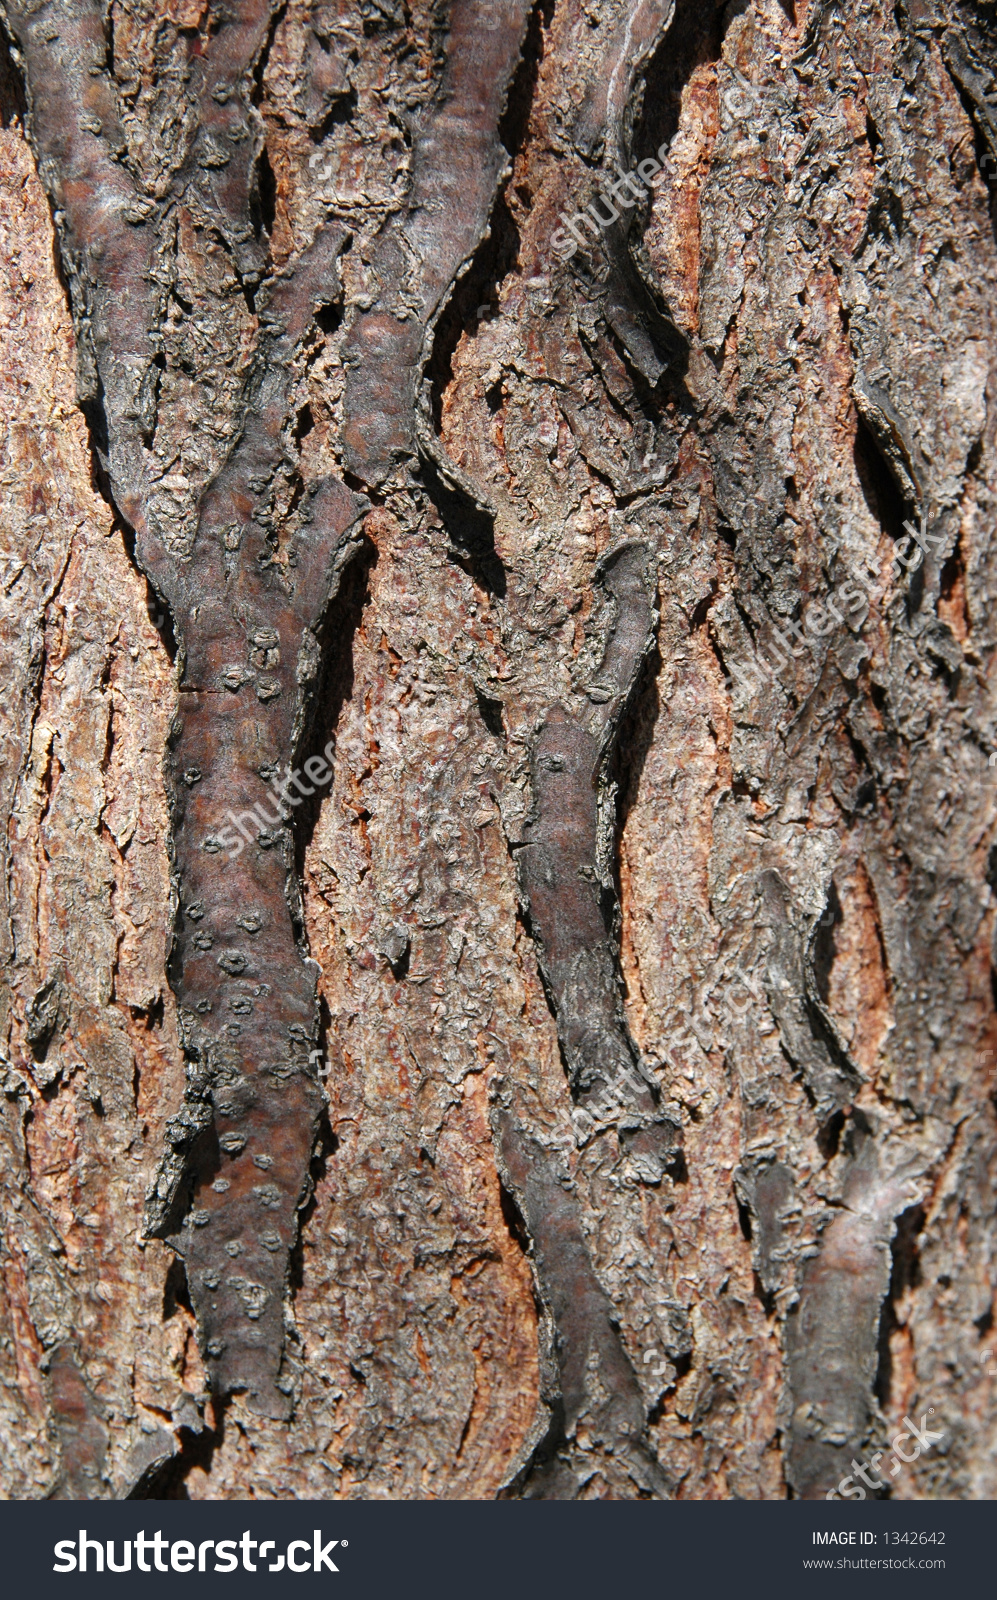 Tree Bark Of The Skyline Honey Locust.